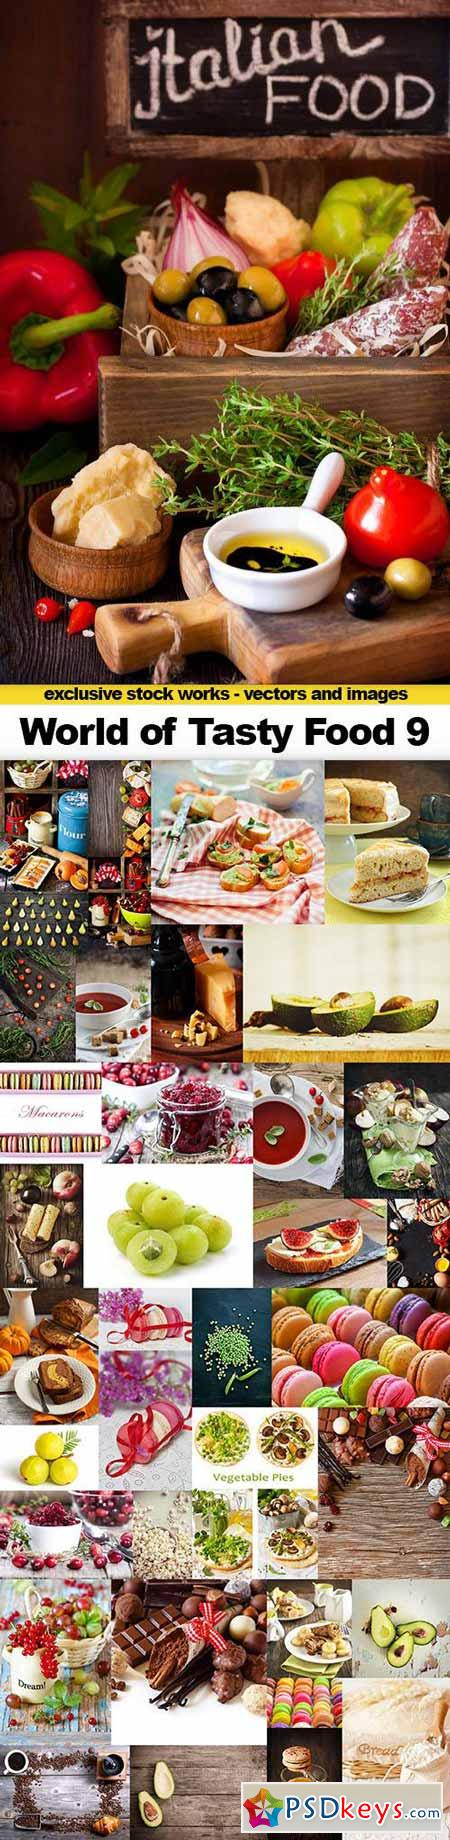 World of Tasty Food 9 - 38x UHQ JPEG